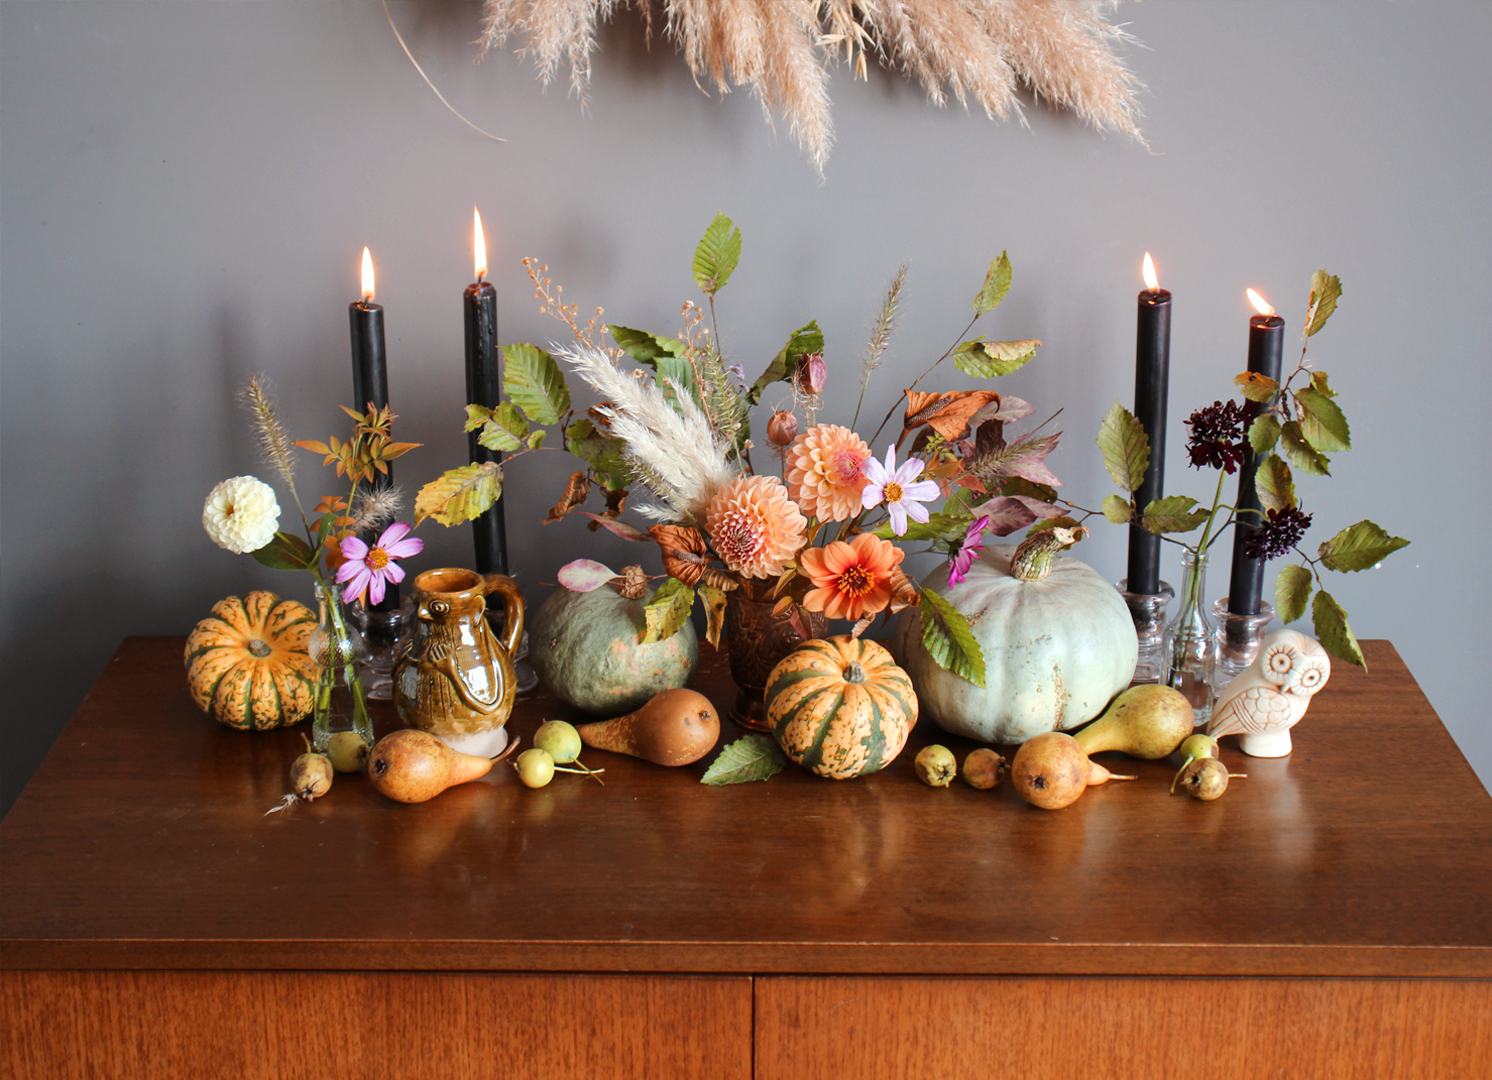 sideboard-hallway-halloween-display-ideas-natural-floral-styling-nancy-straughan.jpg